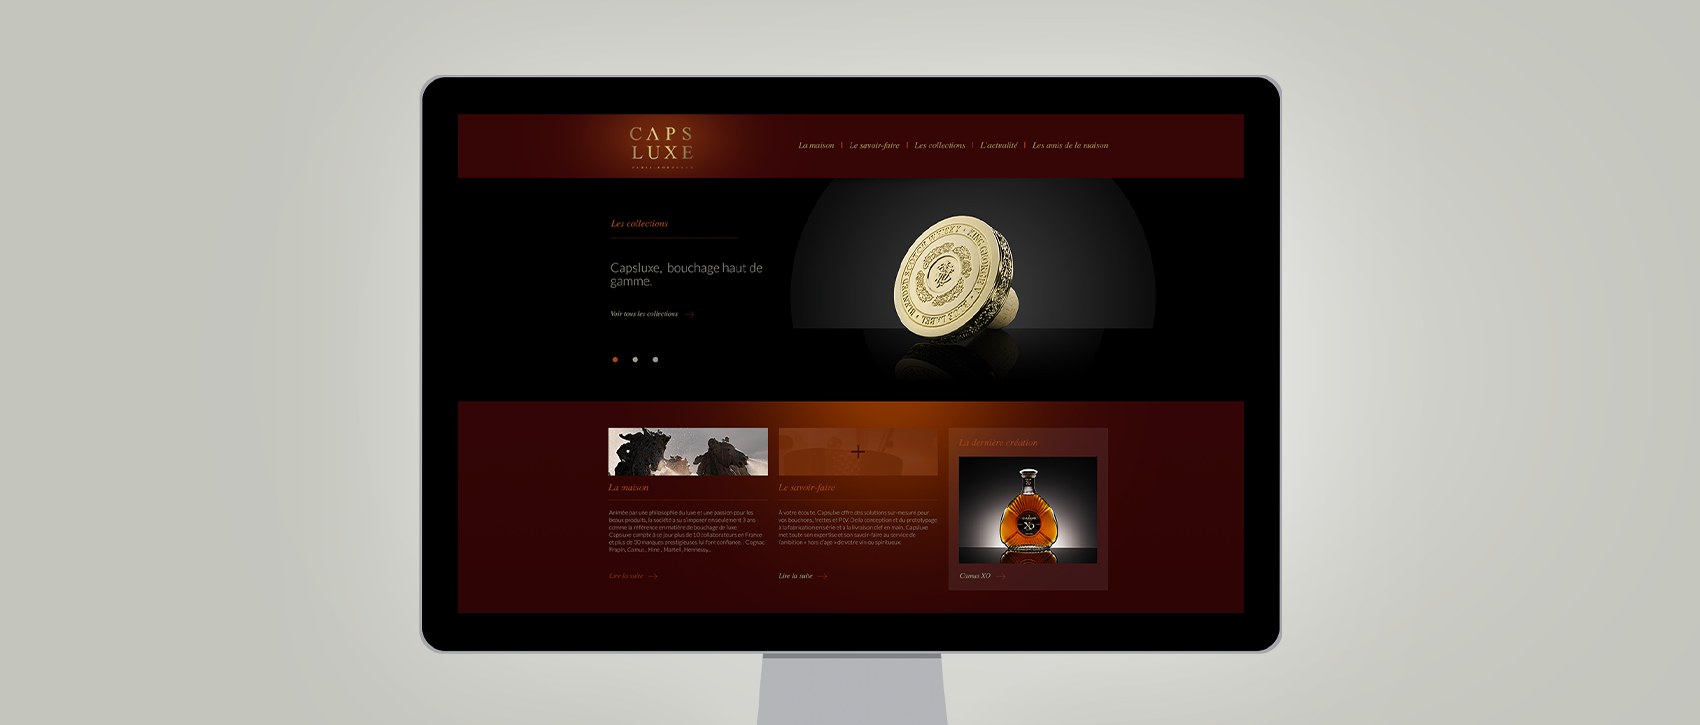 CAPSLUXE HOME PAGE